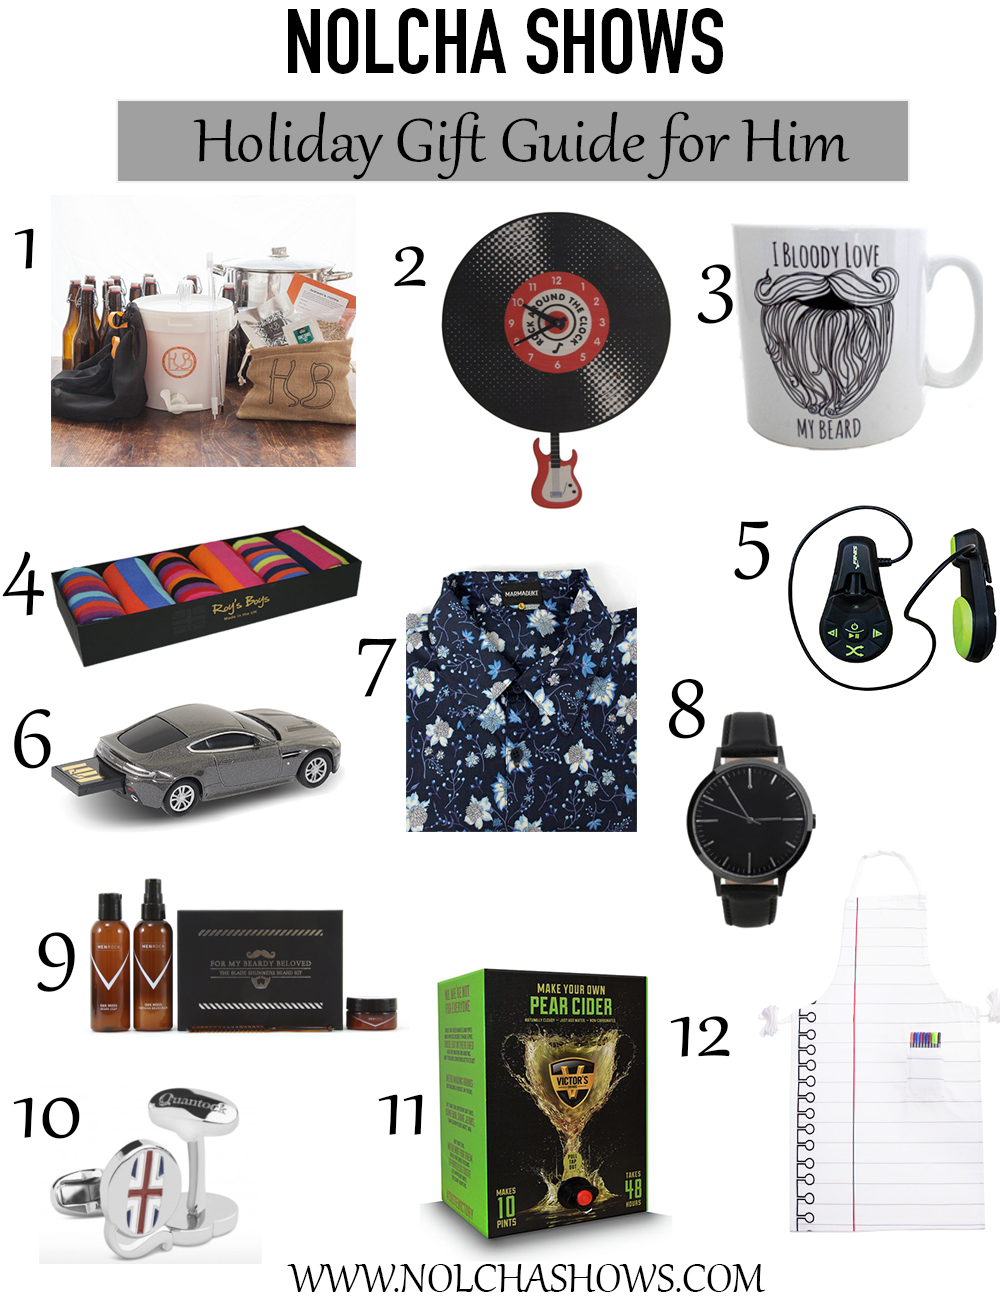 mmh-gift-guide-for-him